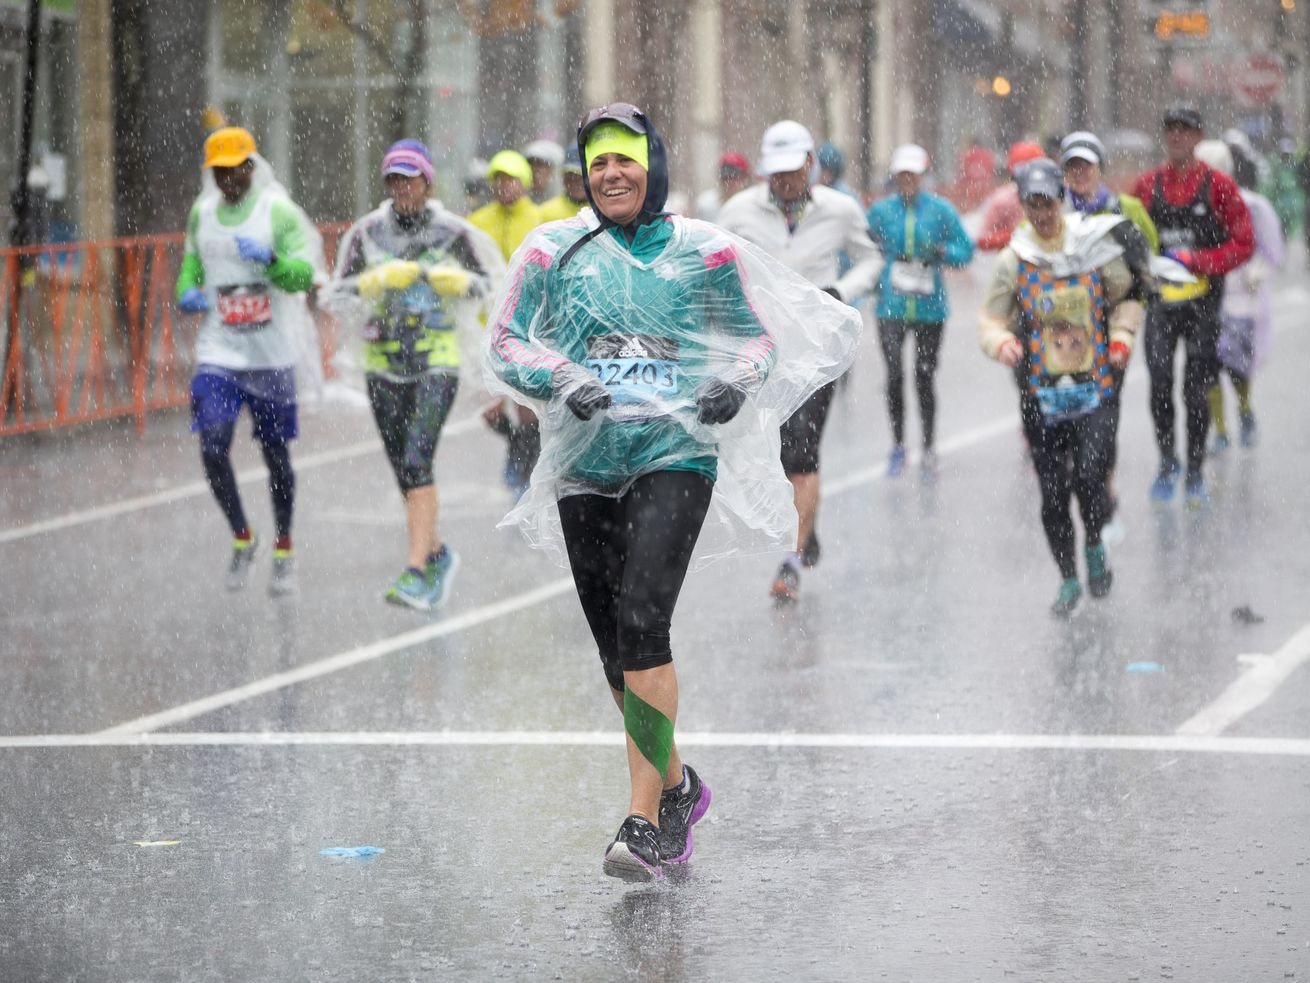 Runners approach the 24-mile marker of the Boston Marathon in heavy rain on April 16, 2018.